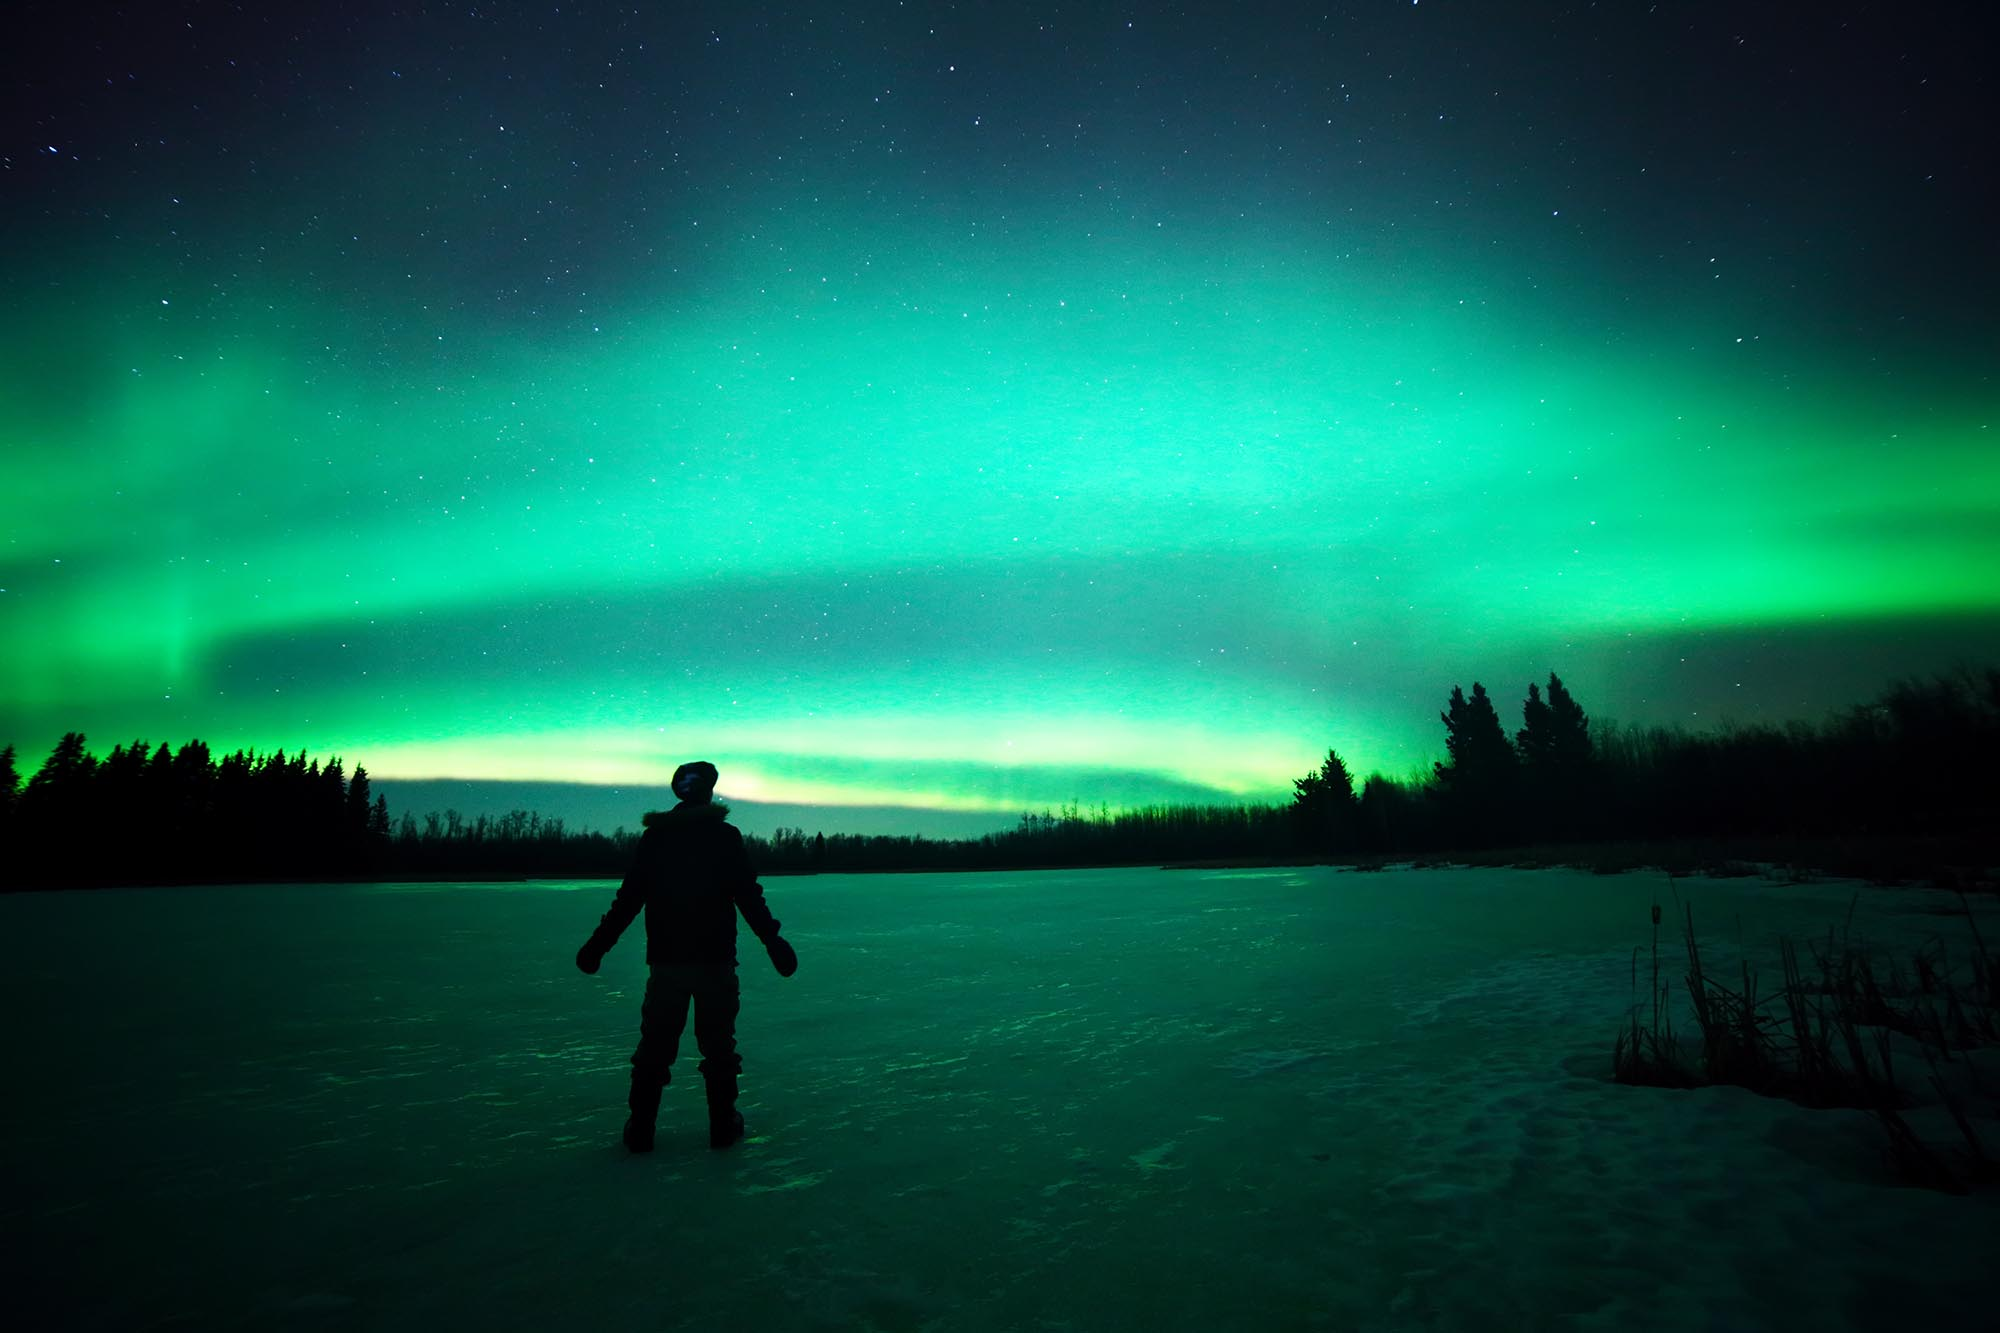 When's the best time to see the Northern Lights